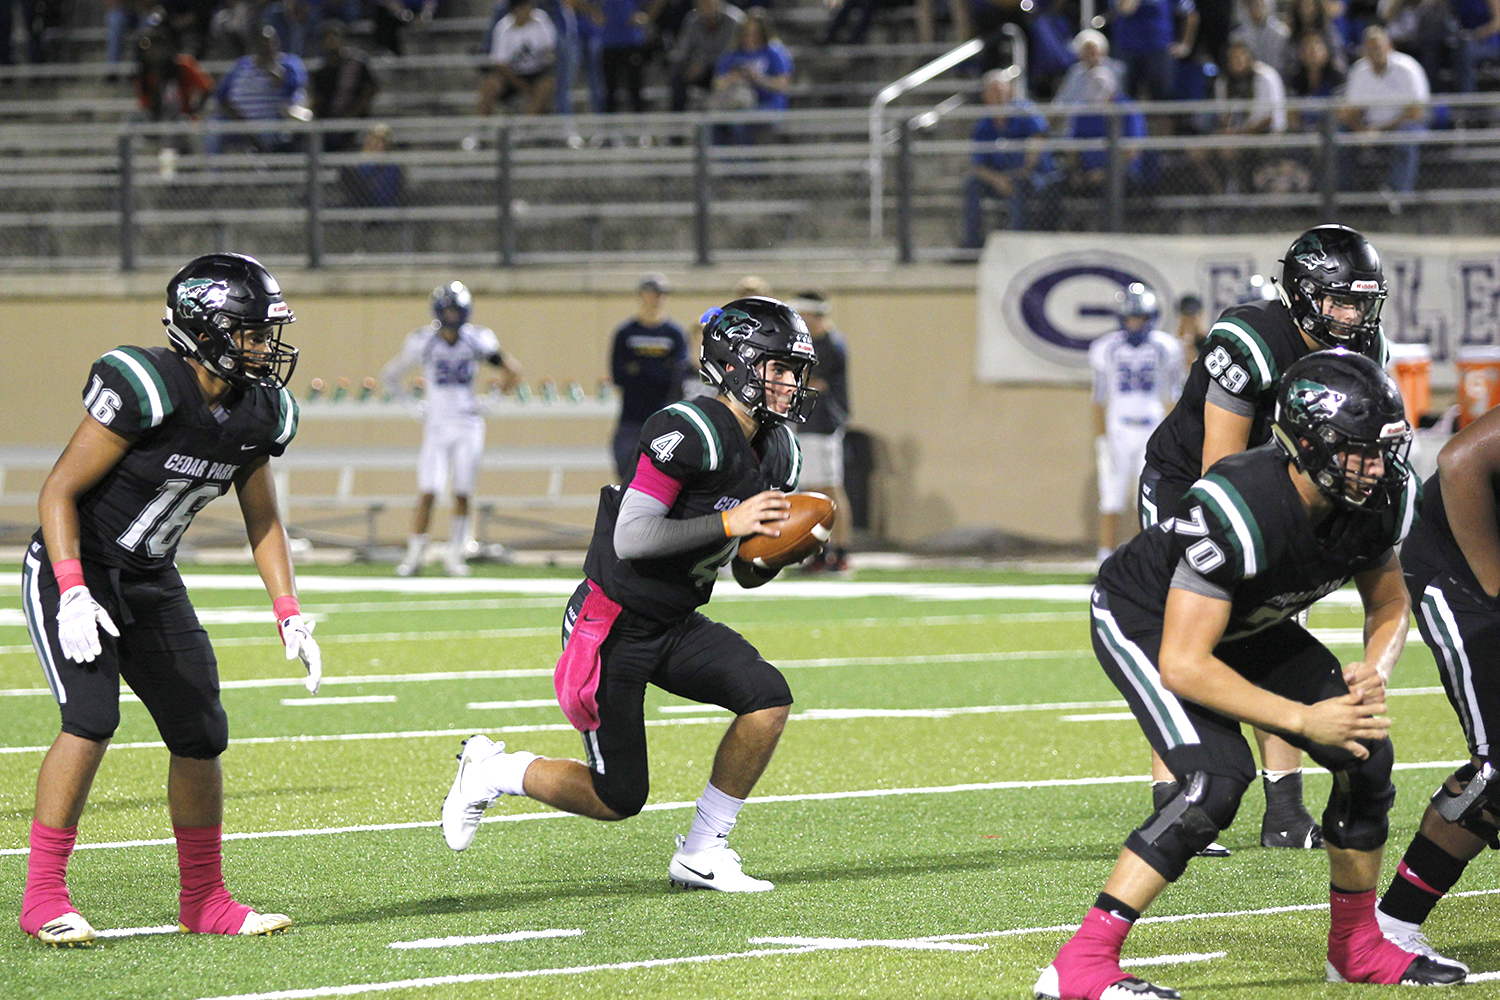 Timberwolves defeat Eagles 27-24, improve to 5-2. Sophomore QB Ryder Hernandez drops back to pass against Georgetown.